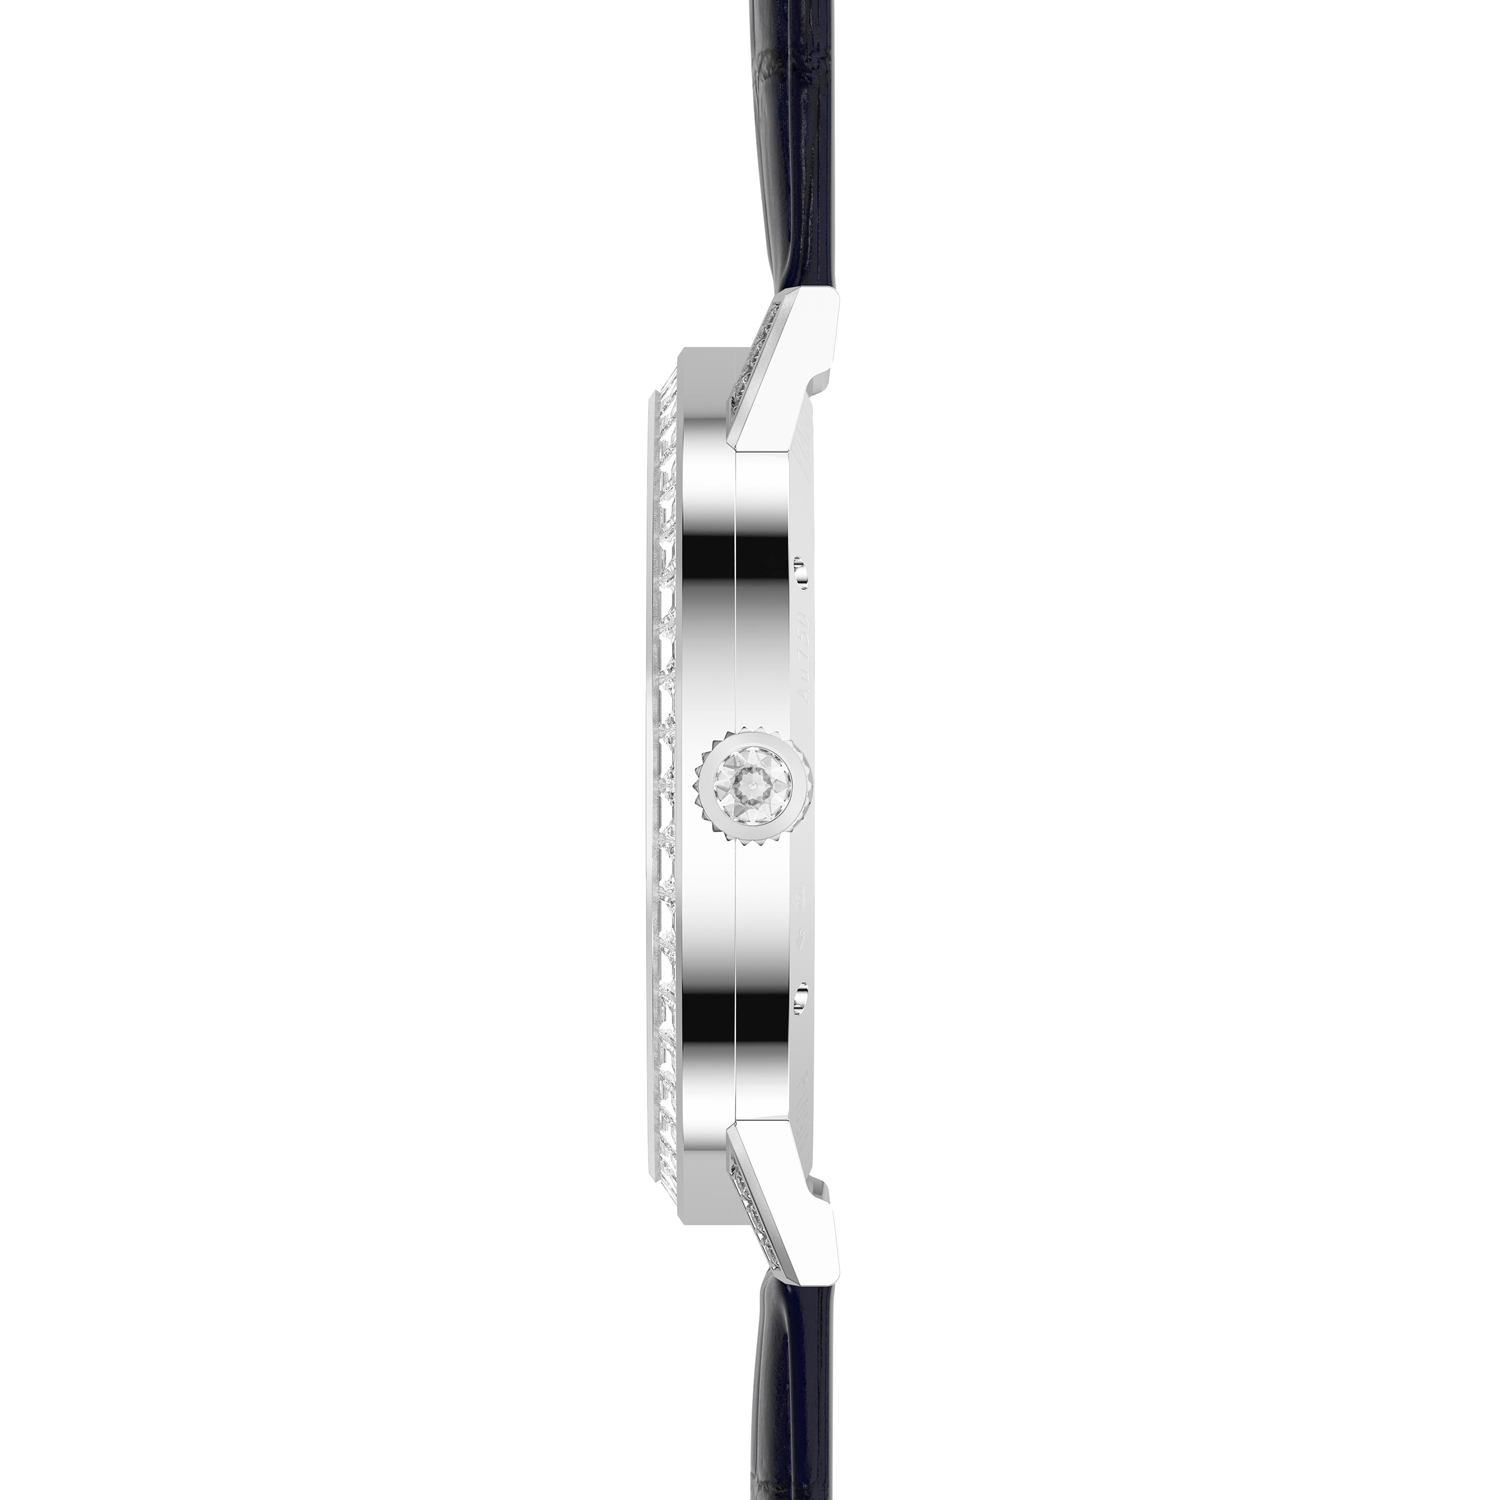 The watch is powered by Piaget's in-house 670P Tourbillon caliber, an ultra-thin manual winding movement with a 48-hour power reserve